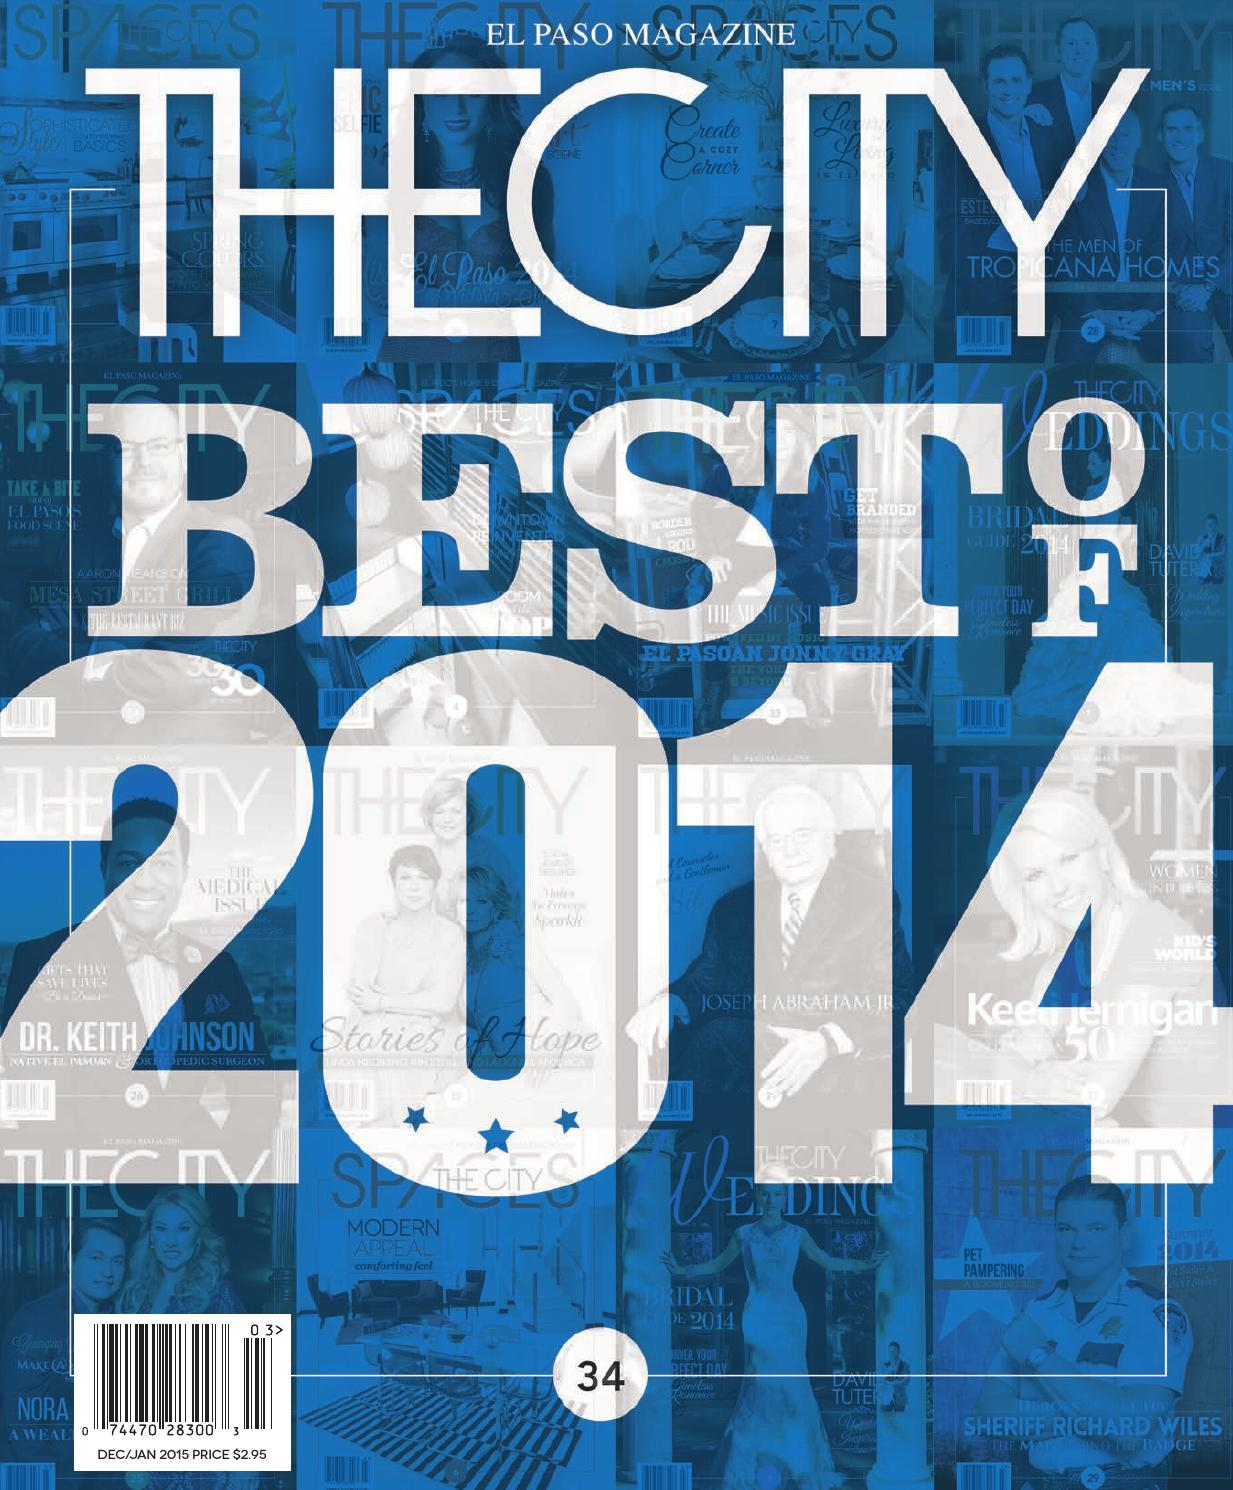 Tcm december january 2015 by the city magazine el paso issuu aiddatafo Gallery